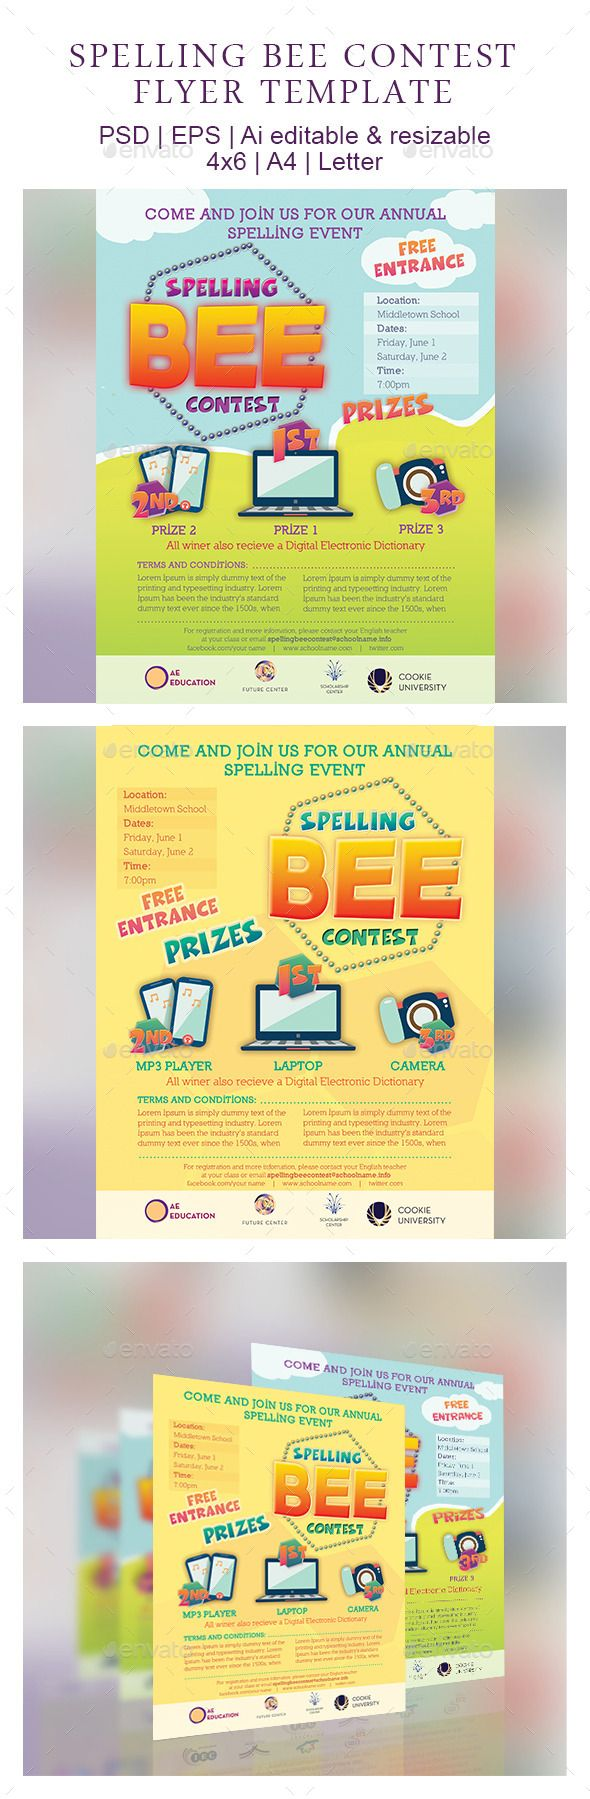 spelling bee contest flyer template flyer template student and poster. Black Bedroom Furniture Sets. Home Design Ideas